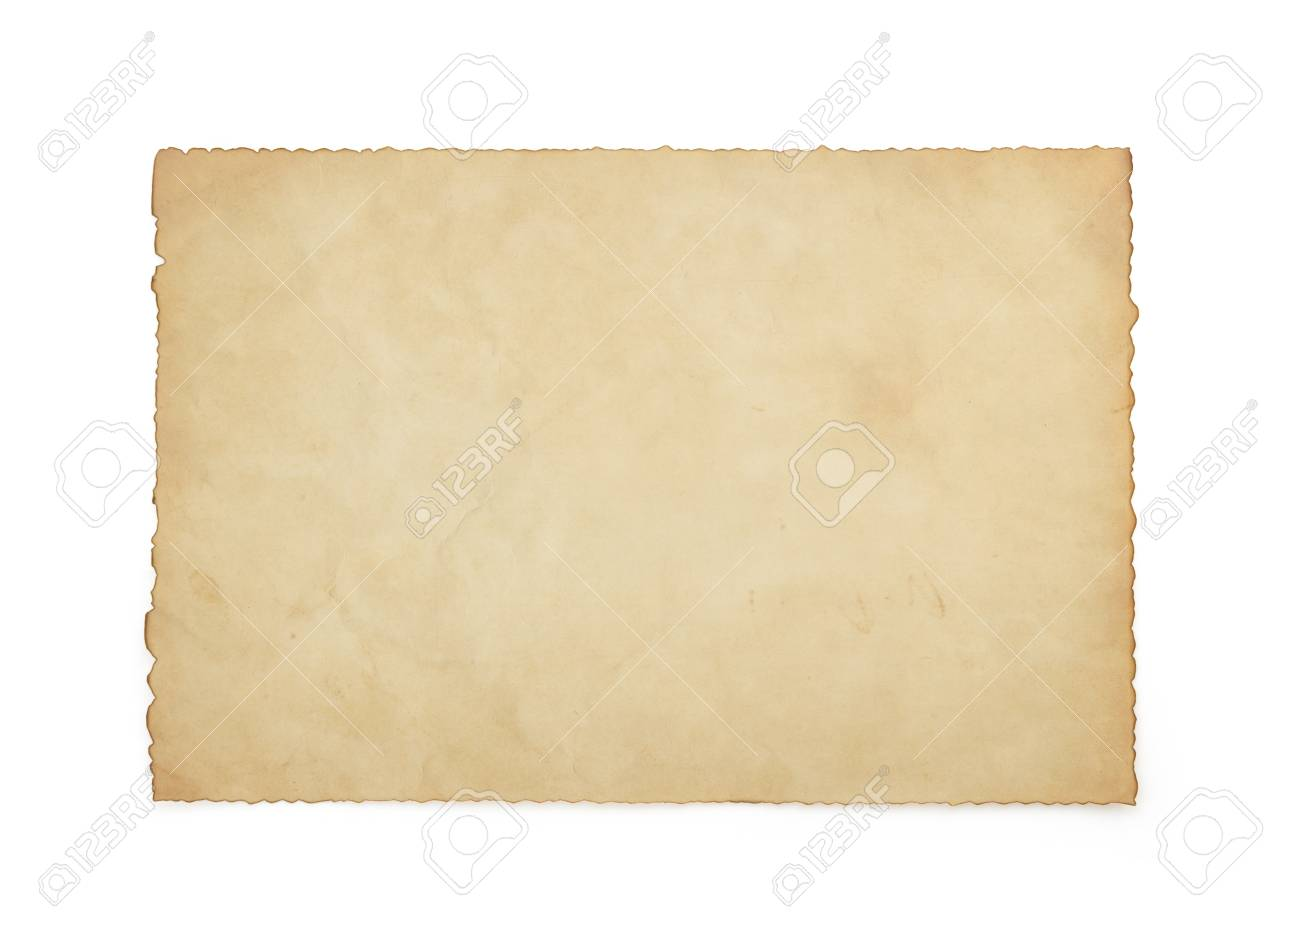 paper vintage parchment isolated on white background - 25699430